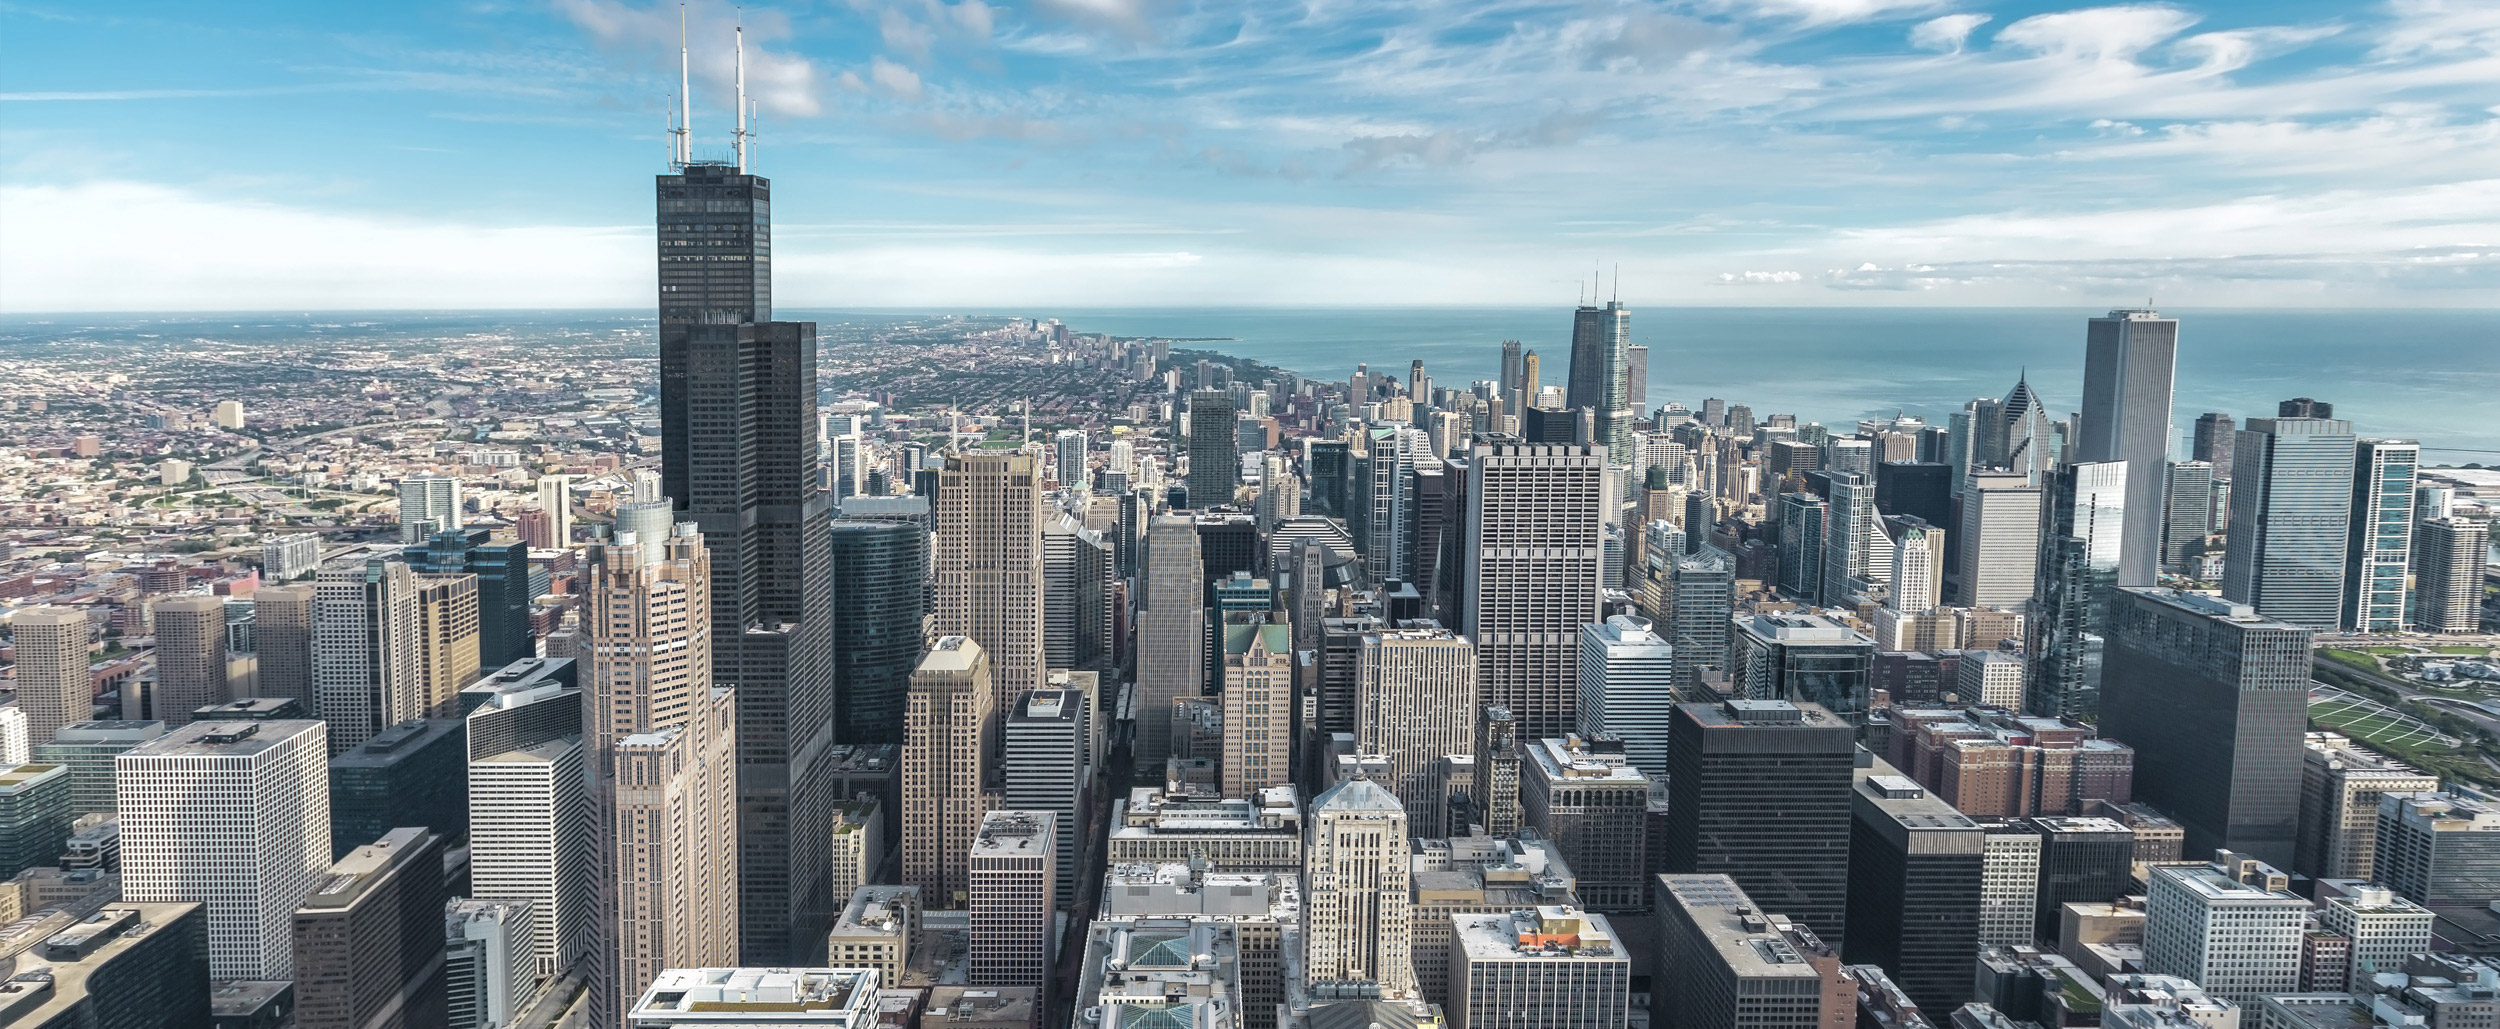 Chicago Control System Services